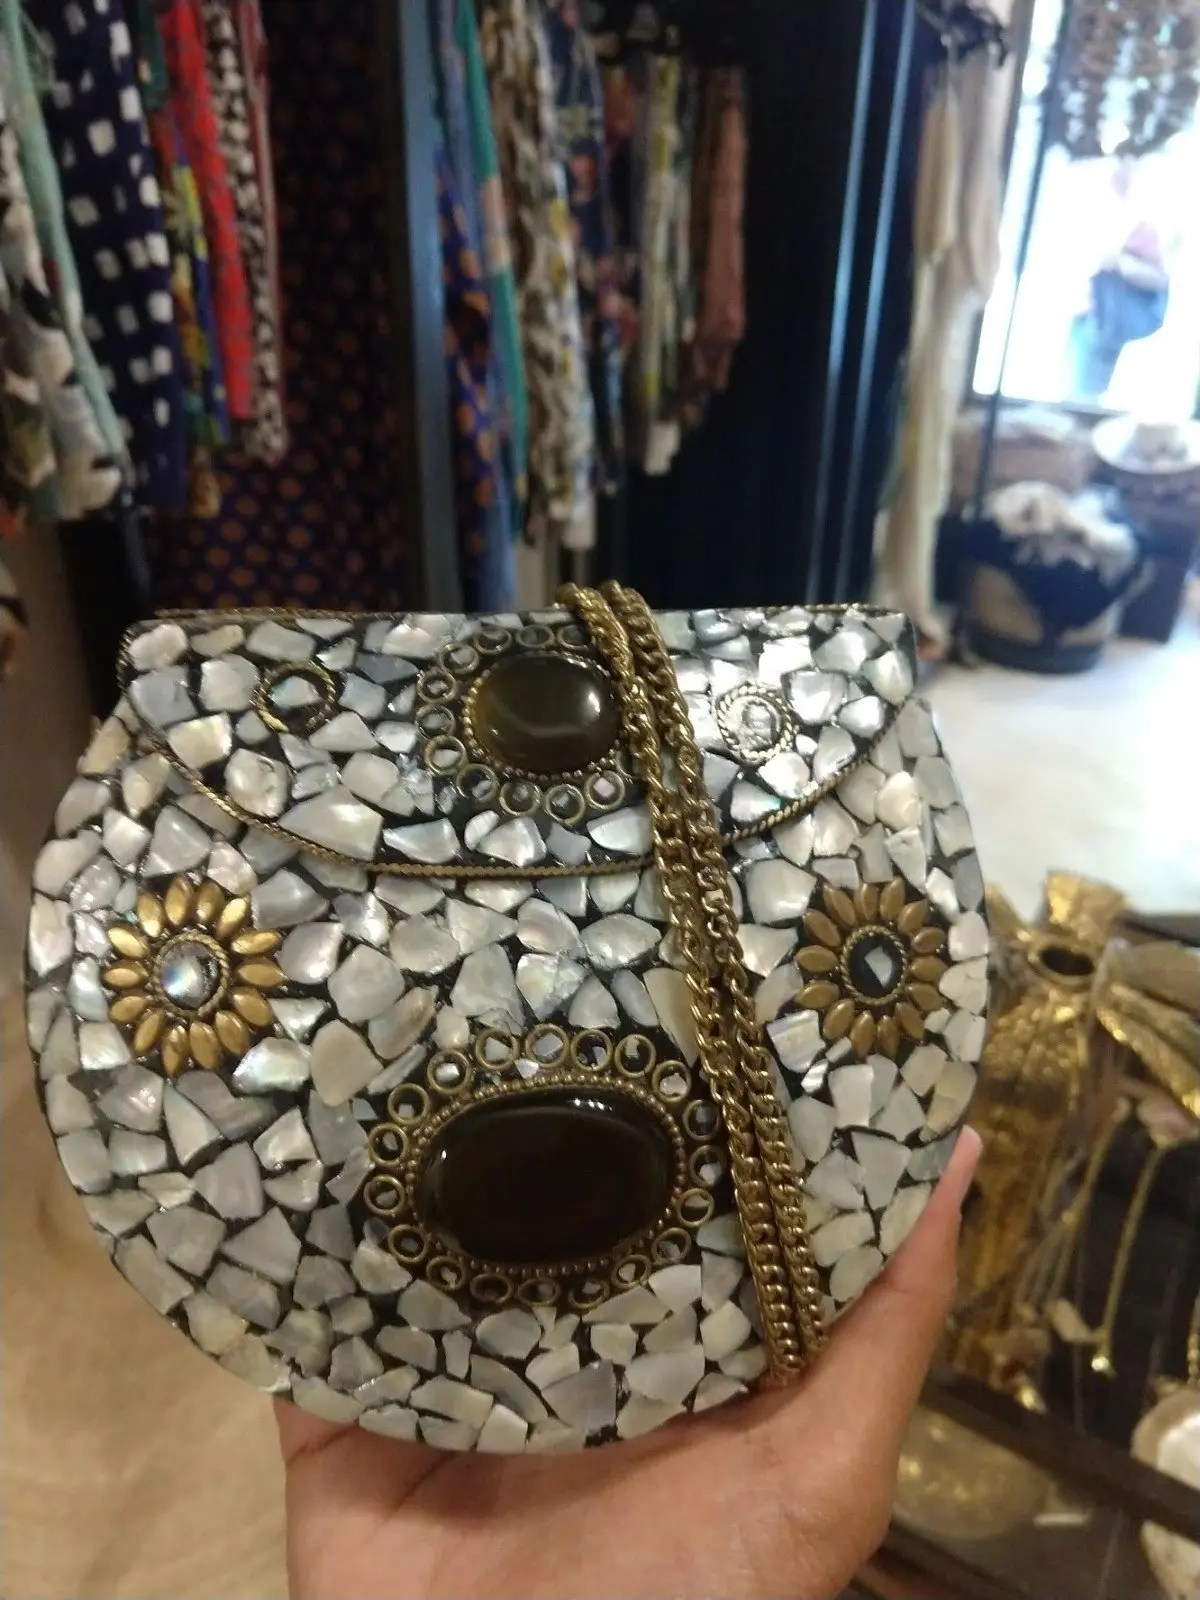 Moroccan inspired purse at boutique in Tulum Mexico